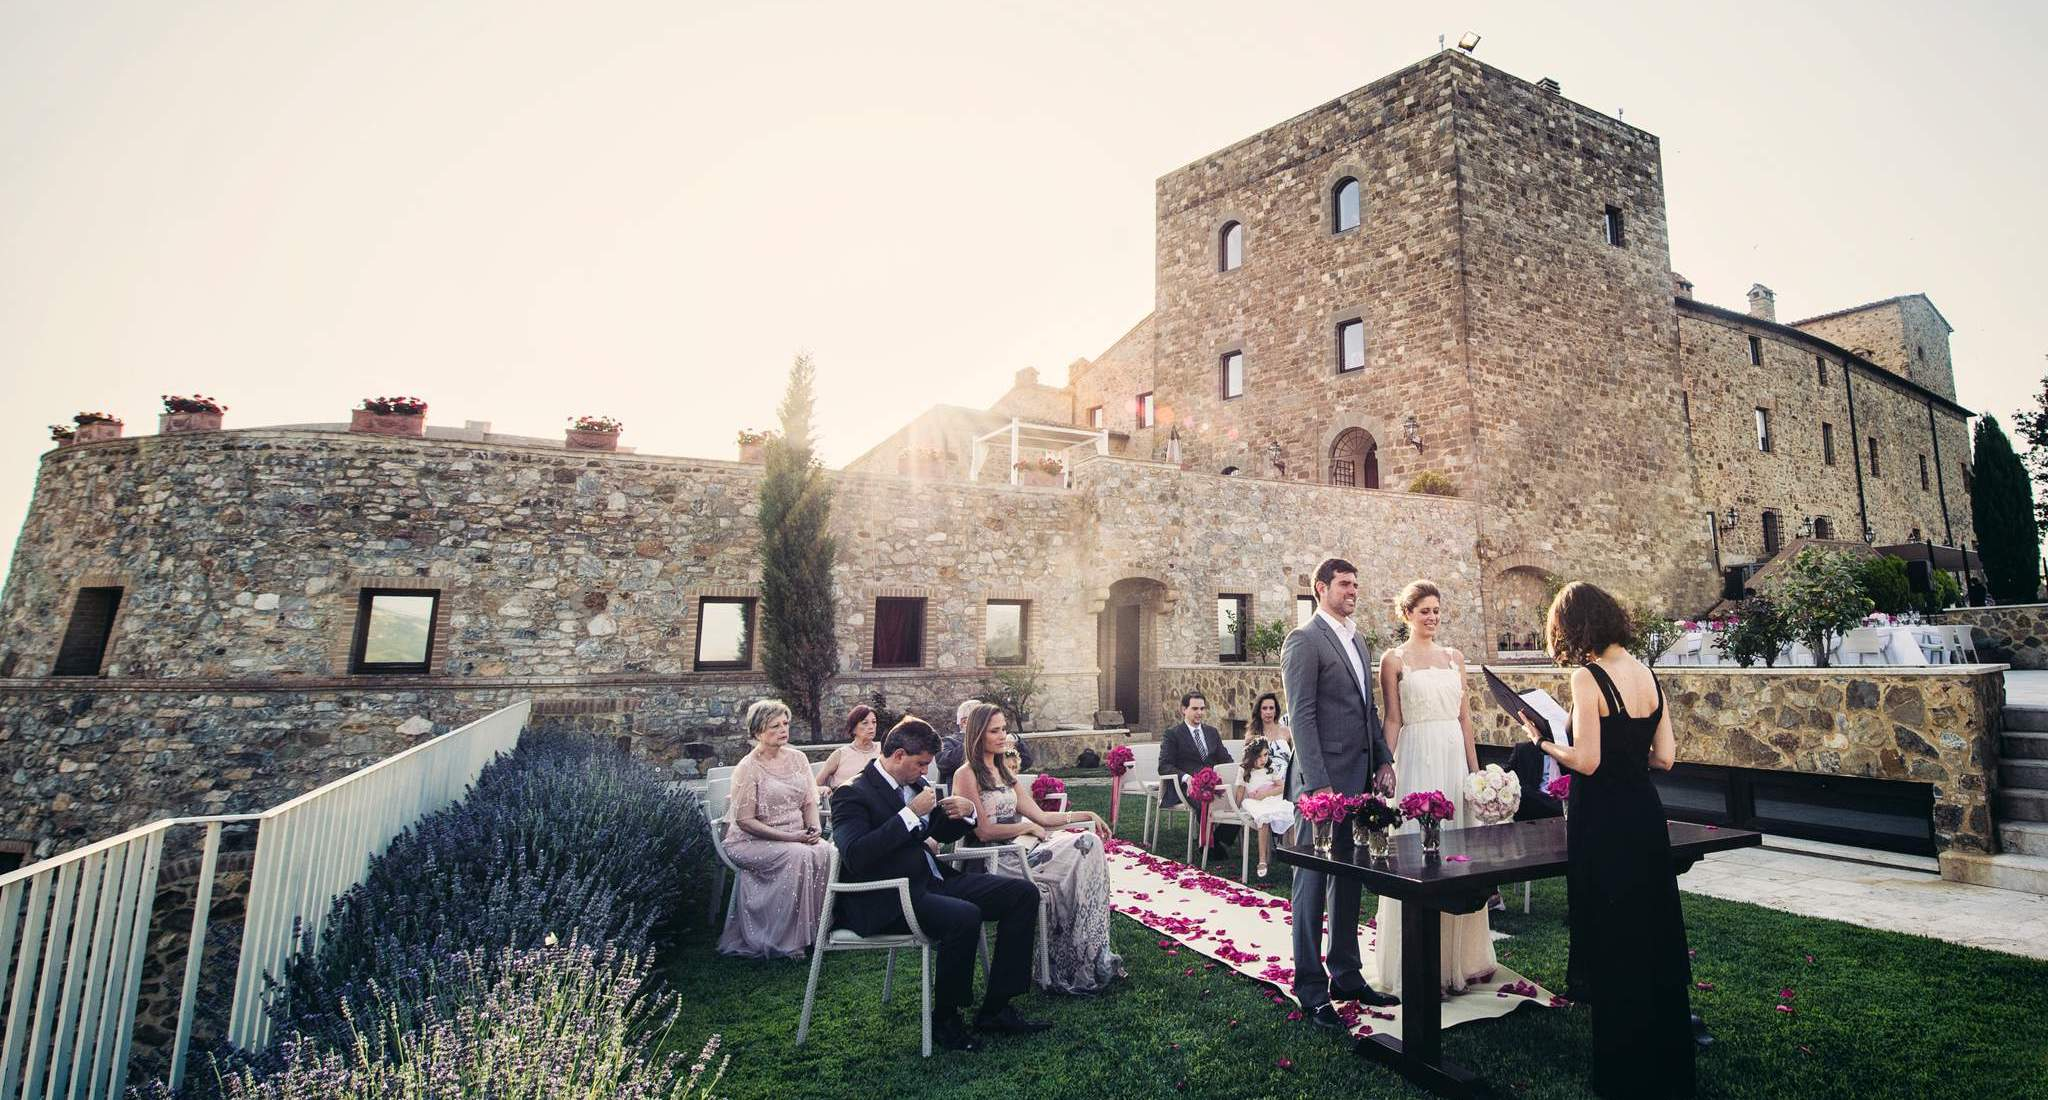 Wedding Venues in Montalcino